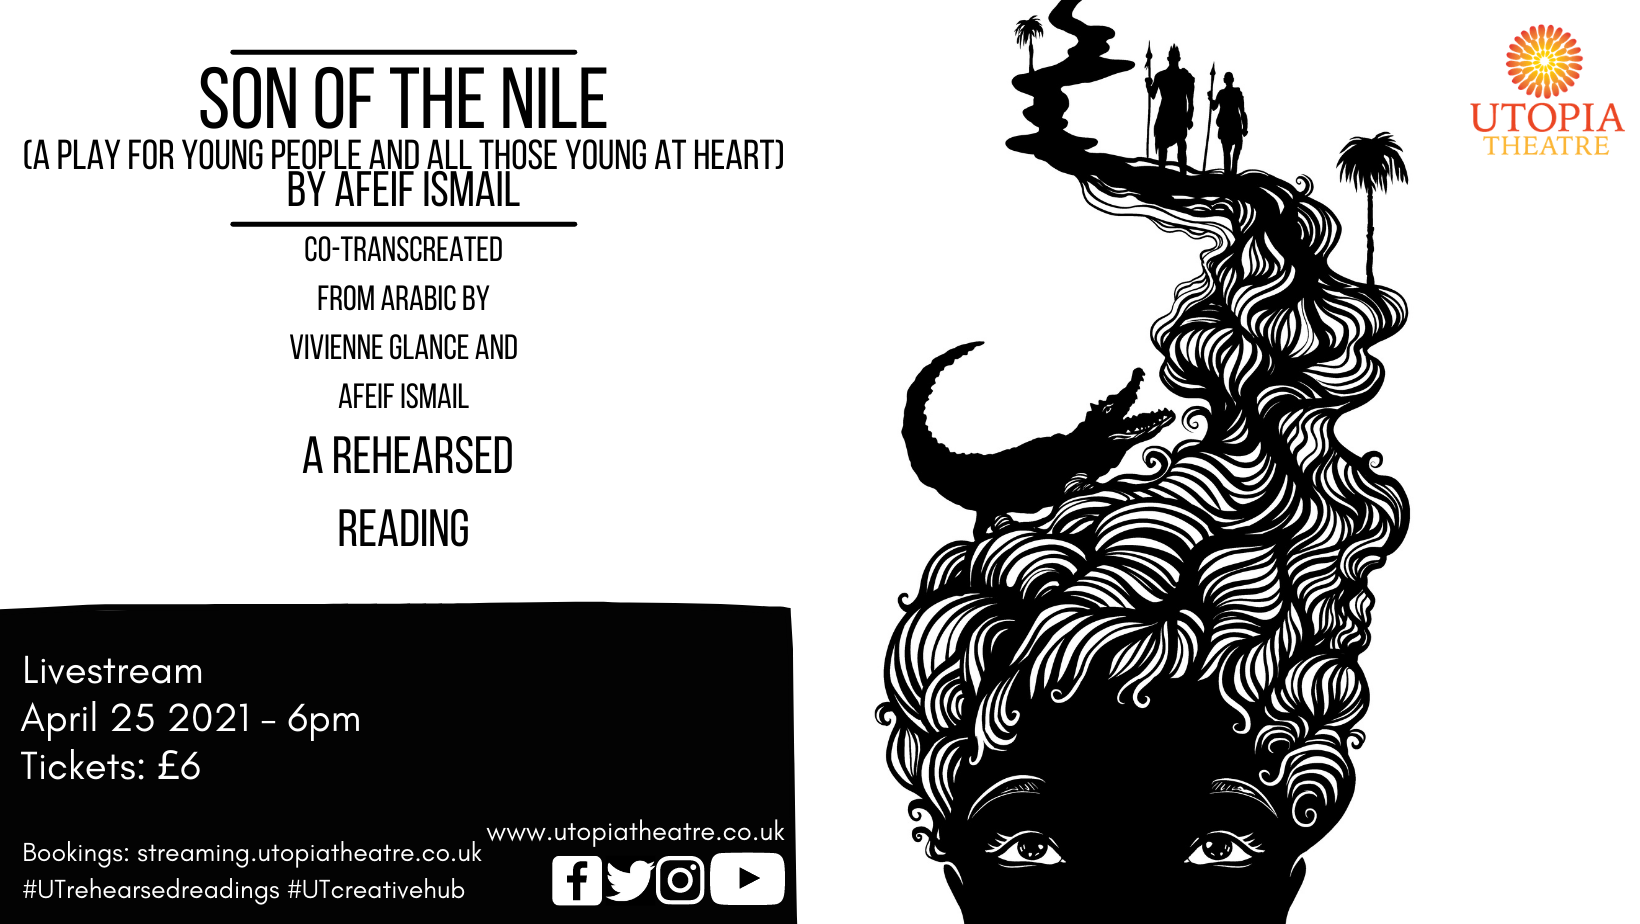 Creative Hub Rehearsed Reading - Son of the Nile (A play for young people and all those young at heart) by Afeif Ismail.        Co-transcreated from Arabic By Vivienne Glance and Afeif Ismail